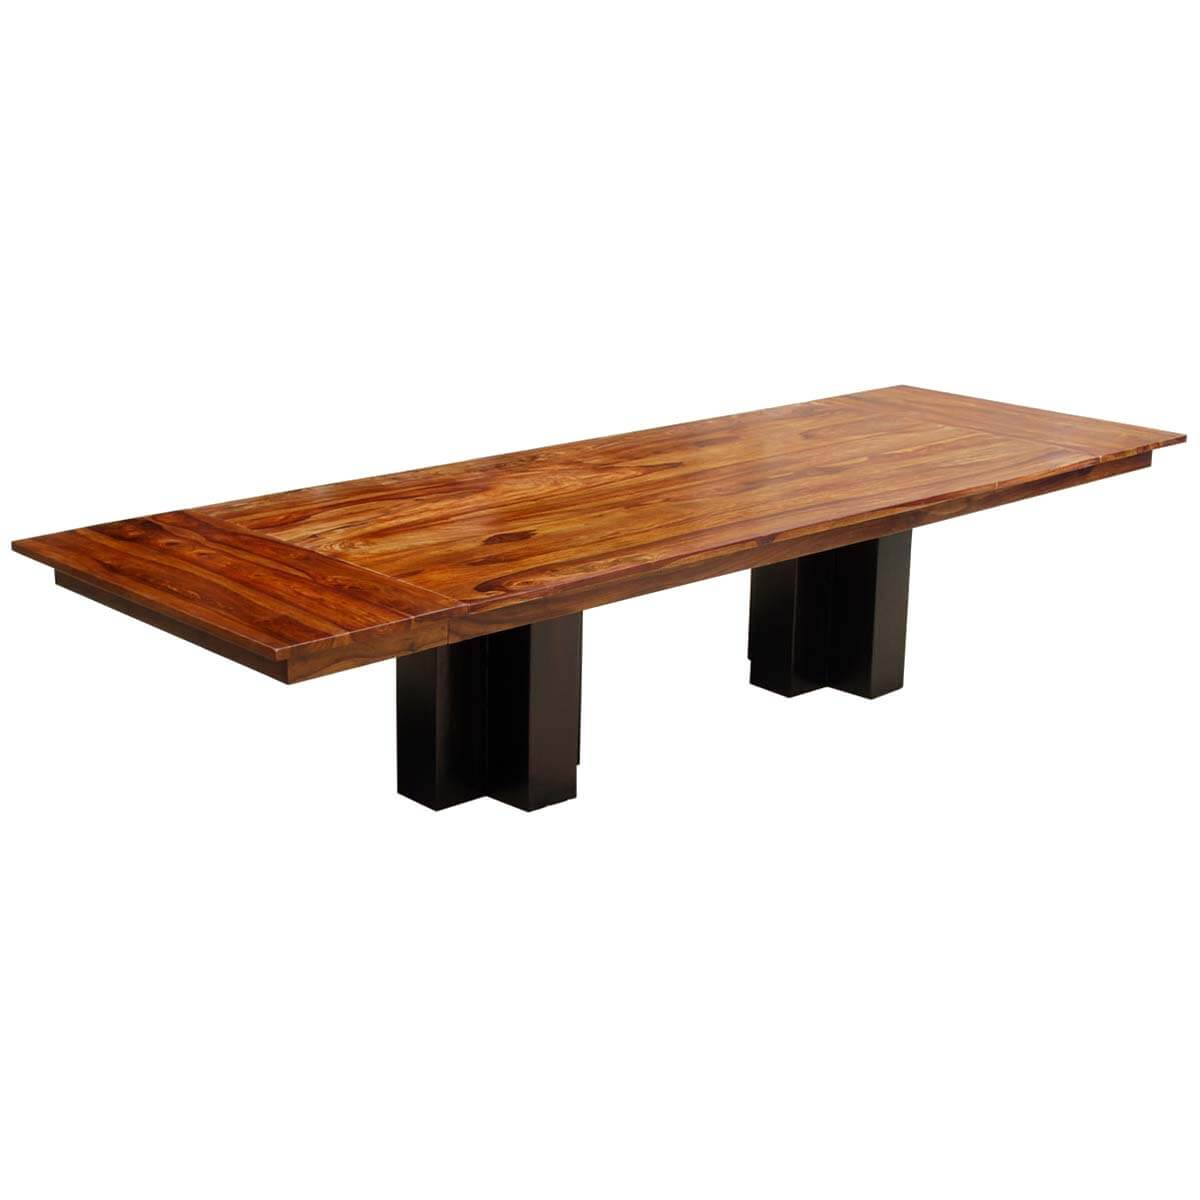 Sutton Wood Double Pedestal Large Conference Table w  : 4430 from www.sierralivingconcepts.com size 1200 x 1200 jpeg 62kB